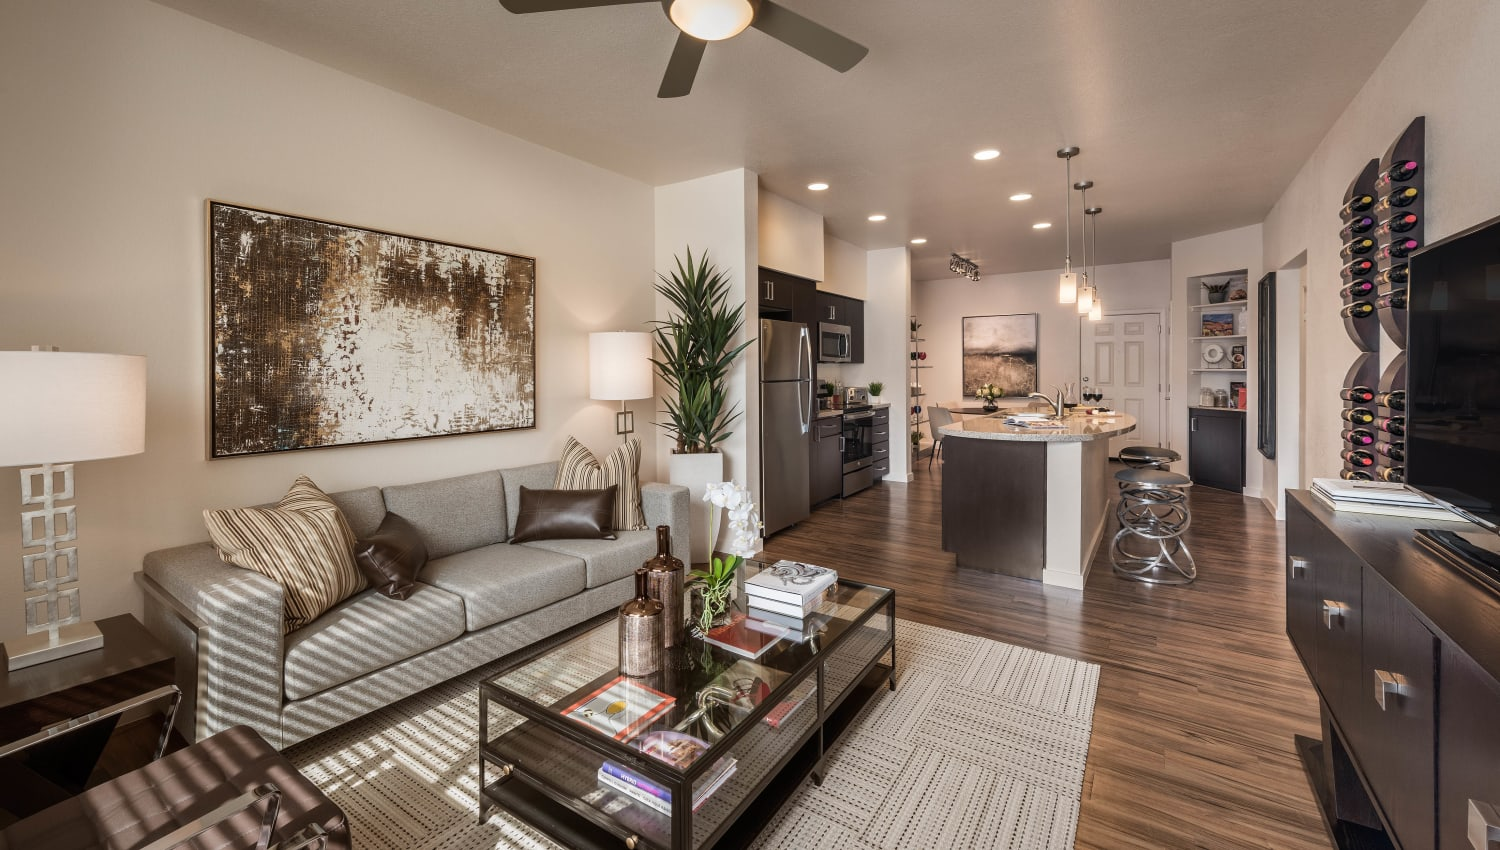 Ceiling fan and hardwood floors in a model home's living area at Vistara at SanTan Village in Gilbert, Arizona